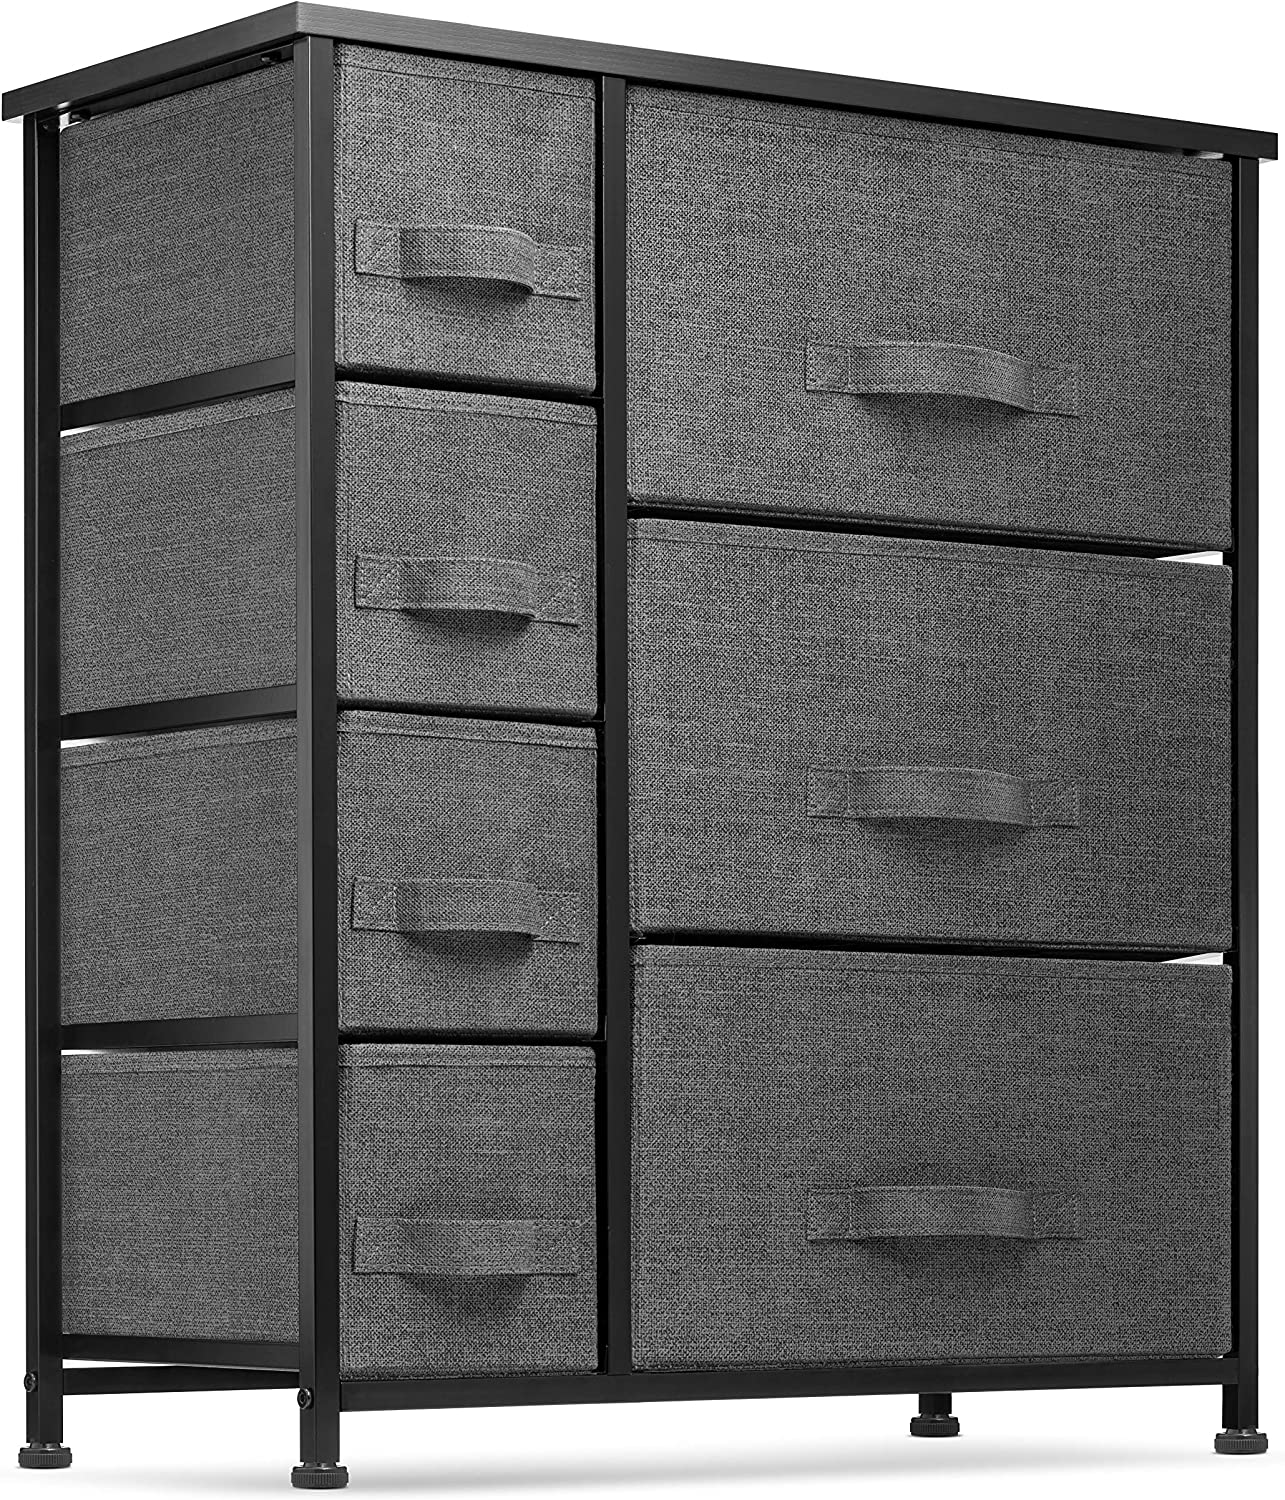 Amazon.com: 7 Drawers Dresser - Furniture Storage Tower Unit For Bedroom, Hallway, Closet, Office Organization - Steel Frame, Wood Top, Easy Pull Fabric Bins Black/Charcoal: Kitchen & Dining